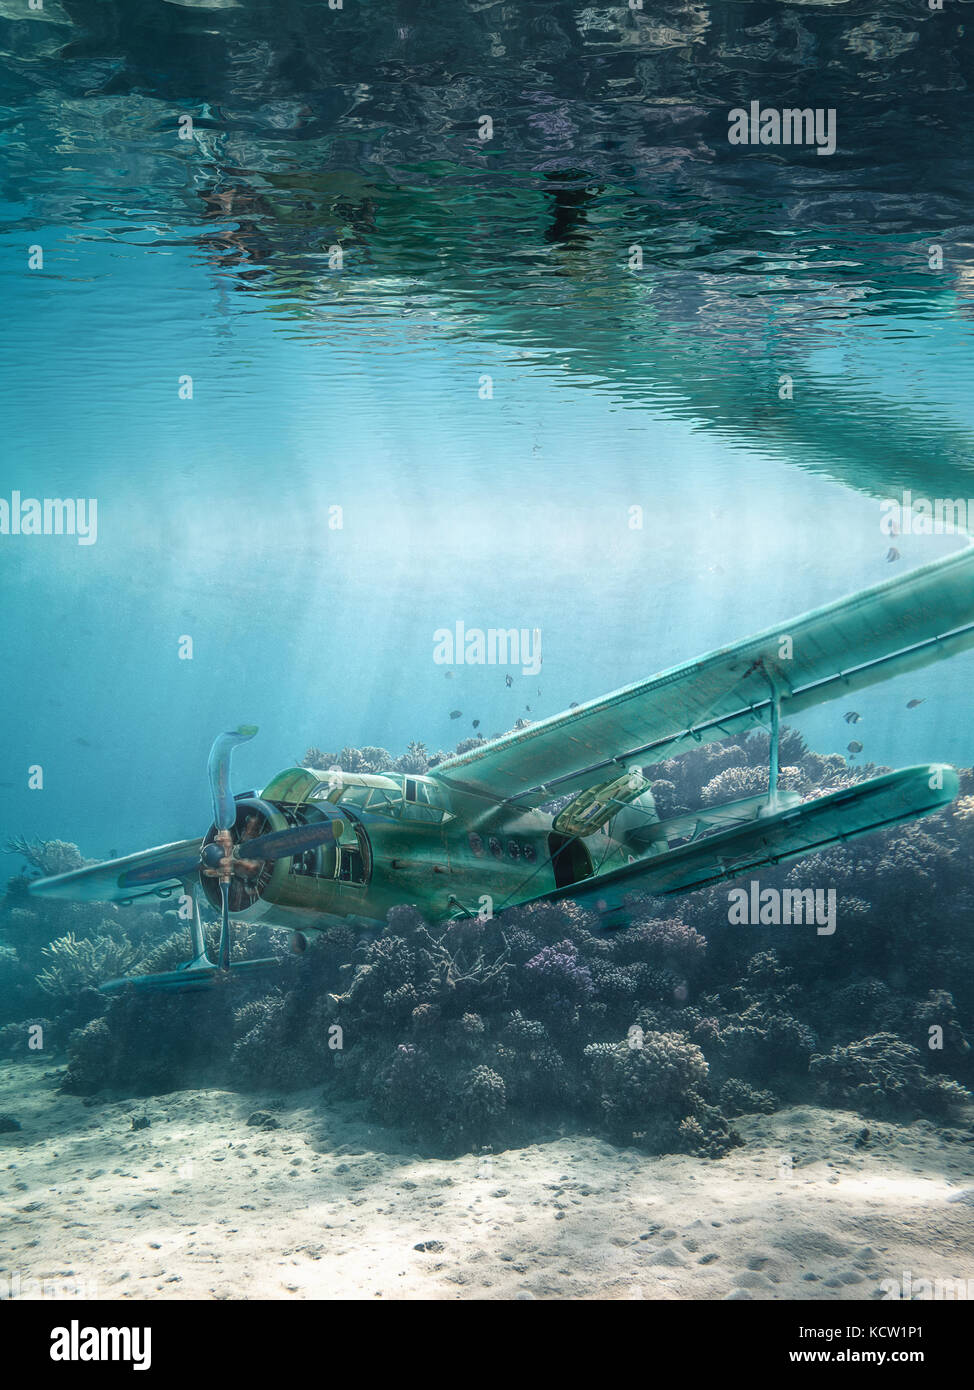 Airplane wreck is underwater - Stock Image